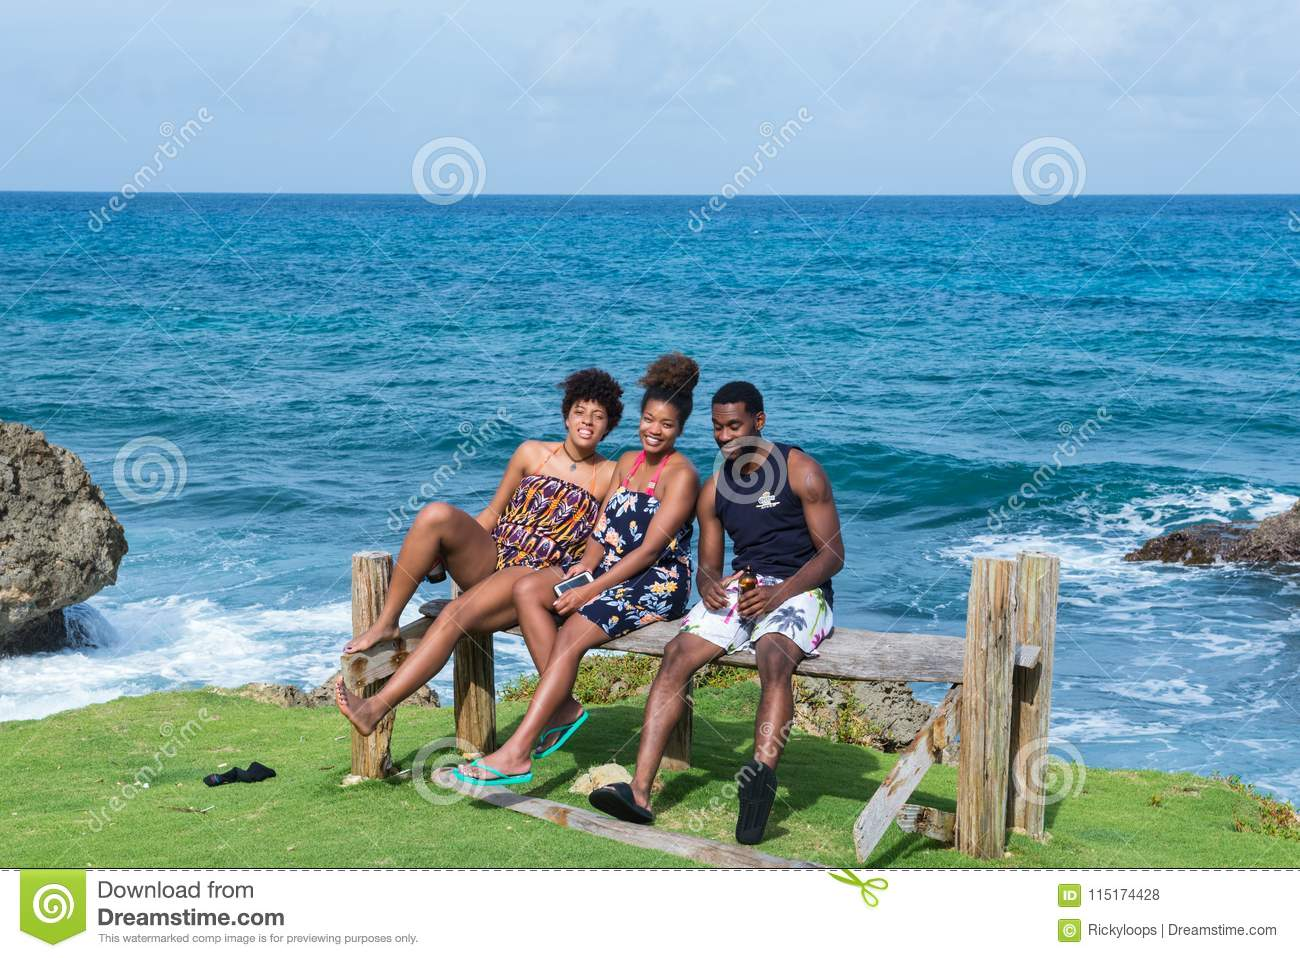 Long Bay, Portland, Jamaica - November 22, 2017: A group of American millennials enjoying themselves at the coastline at Long Bay,